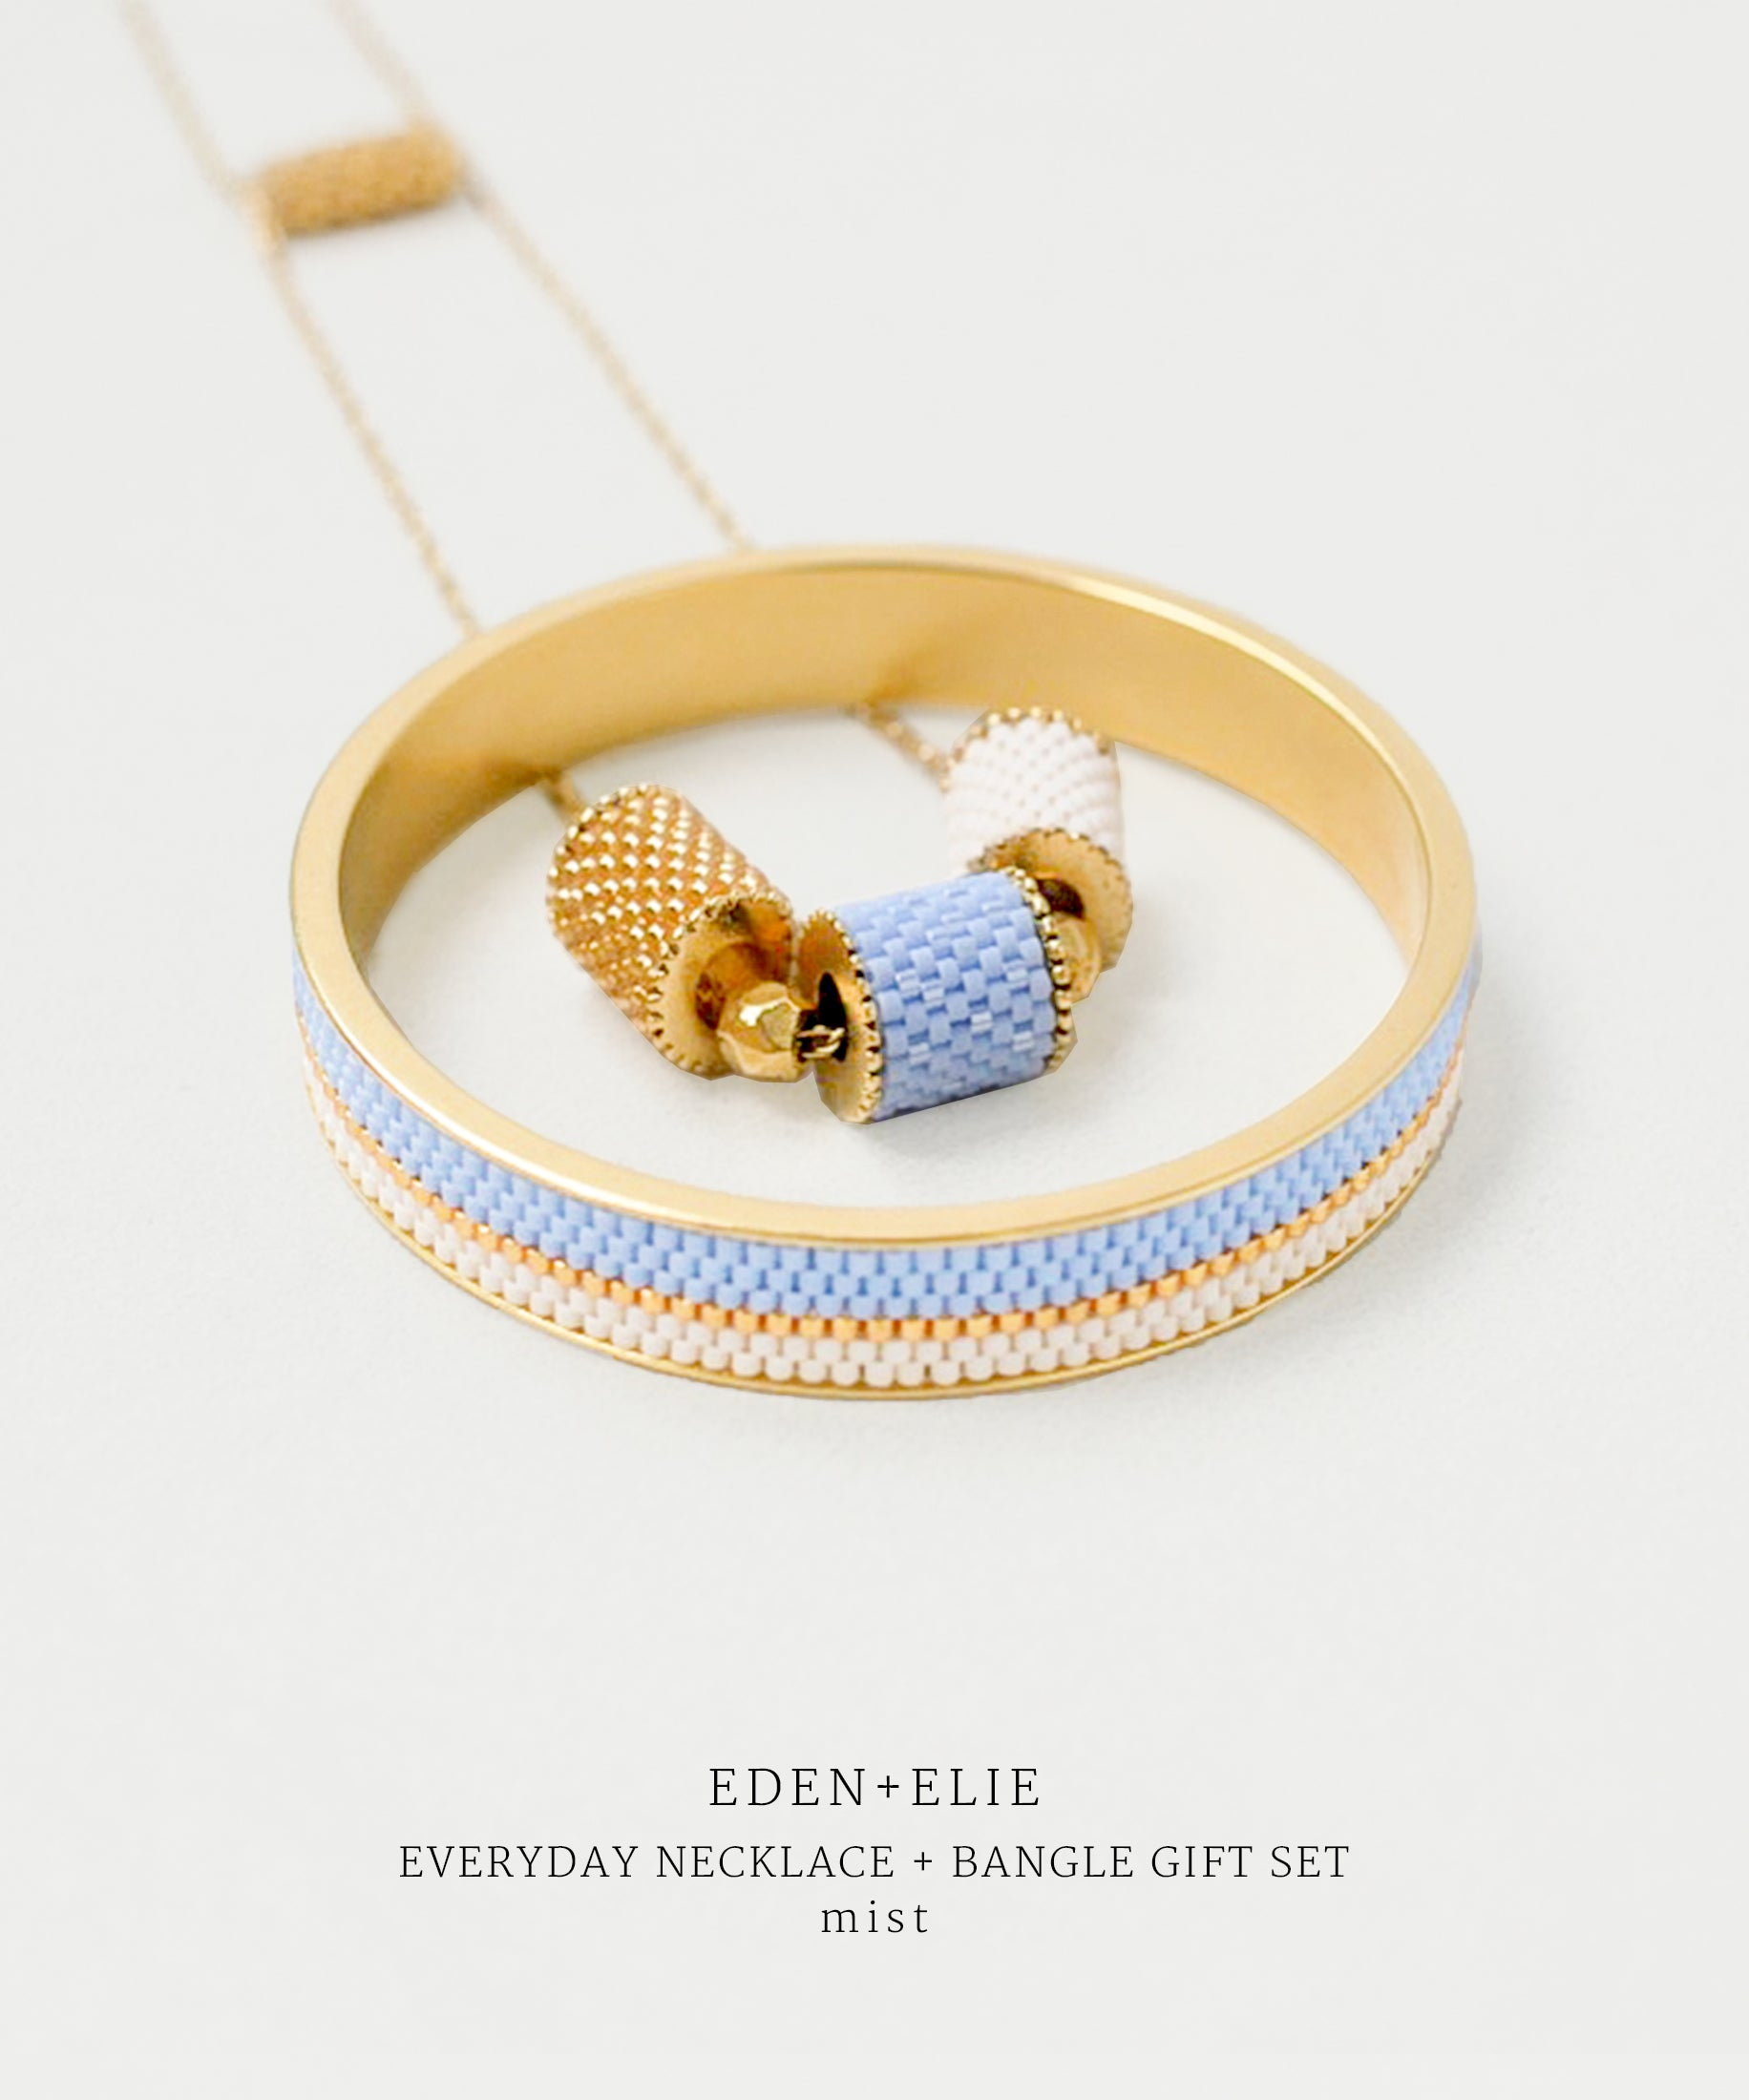 EDEN + ELIE gold plated jewelry Everyday adjustable length necklace + bangle set - mist blue